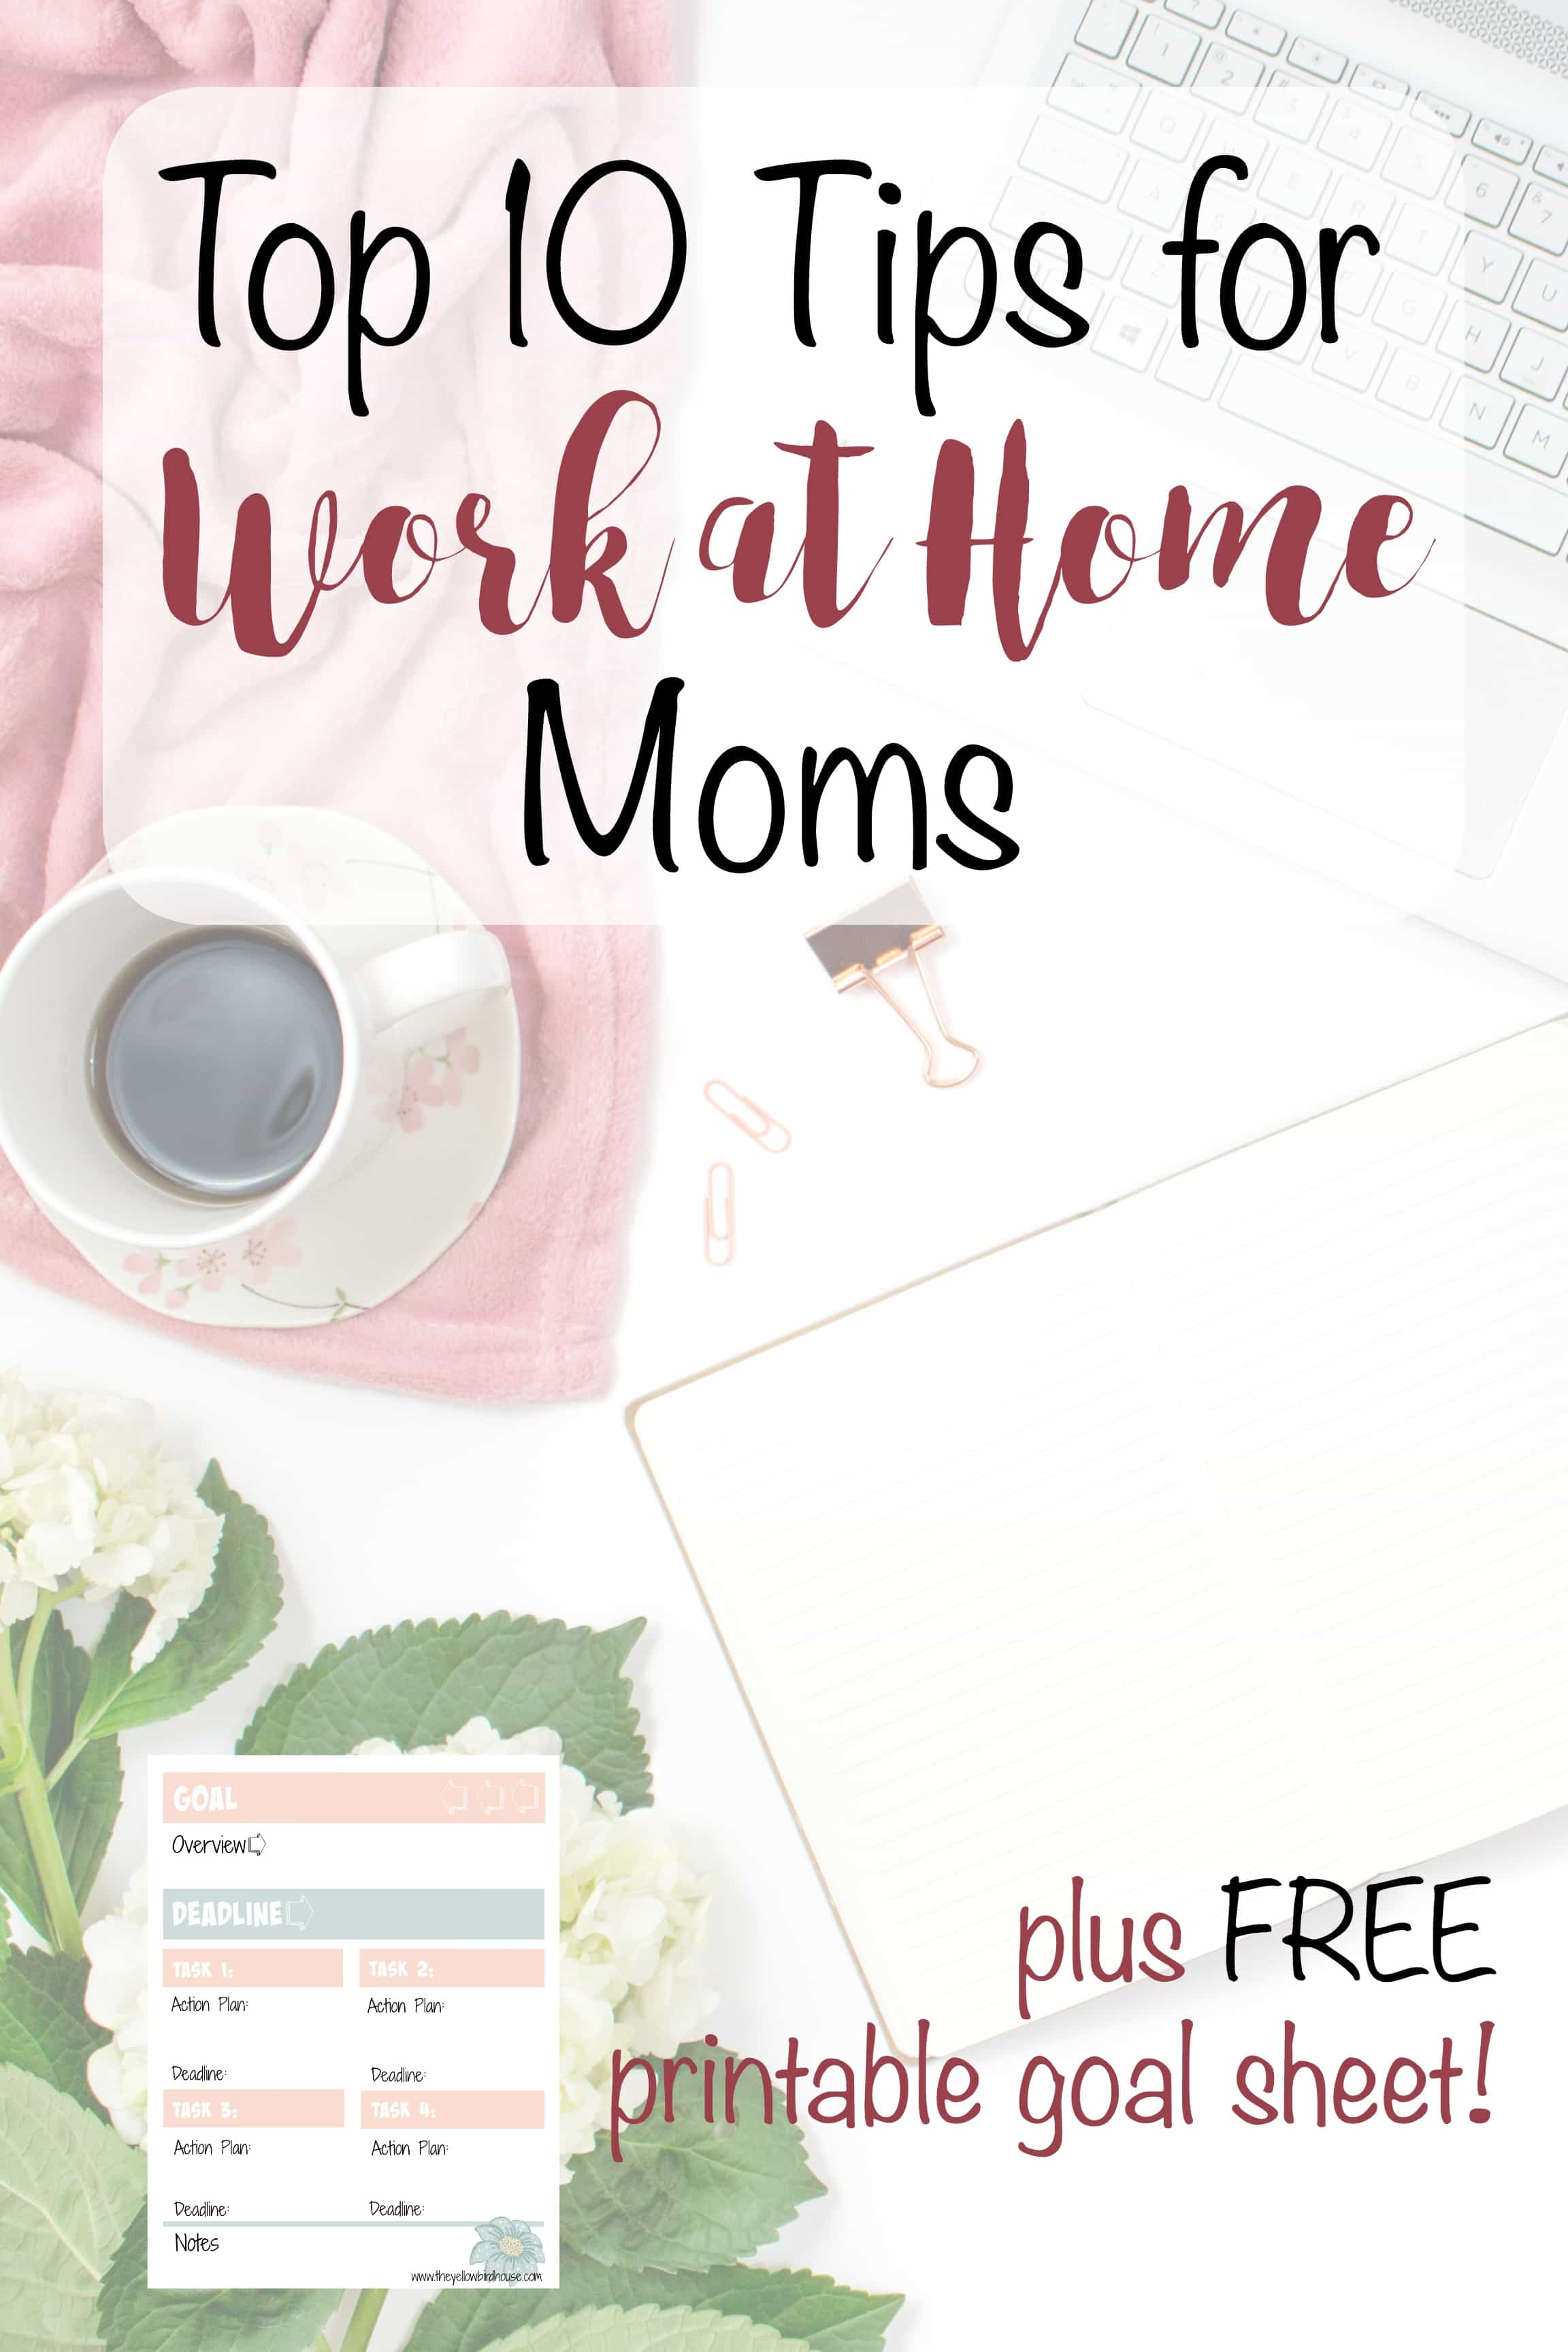 My best tips for gaining structure and success as a work at home mom.